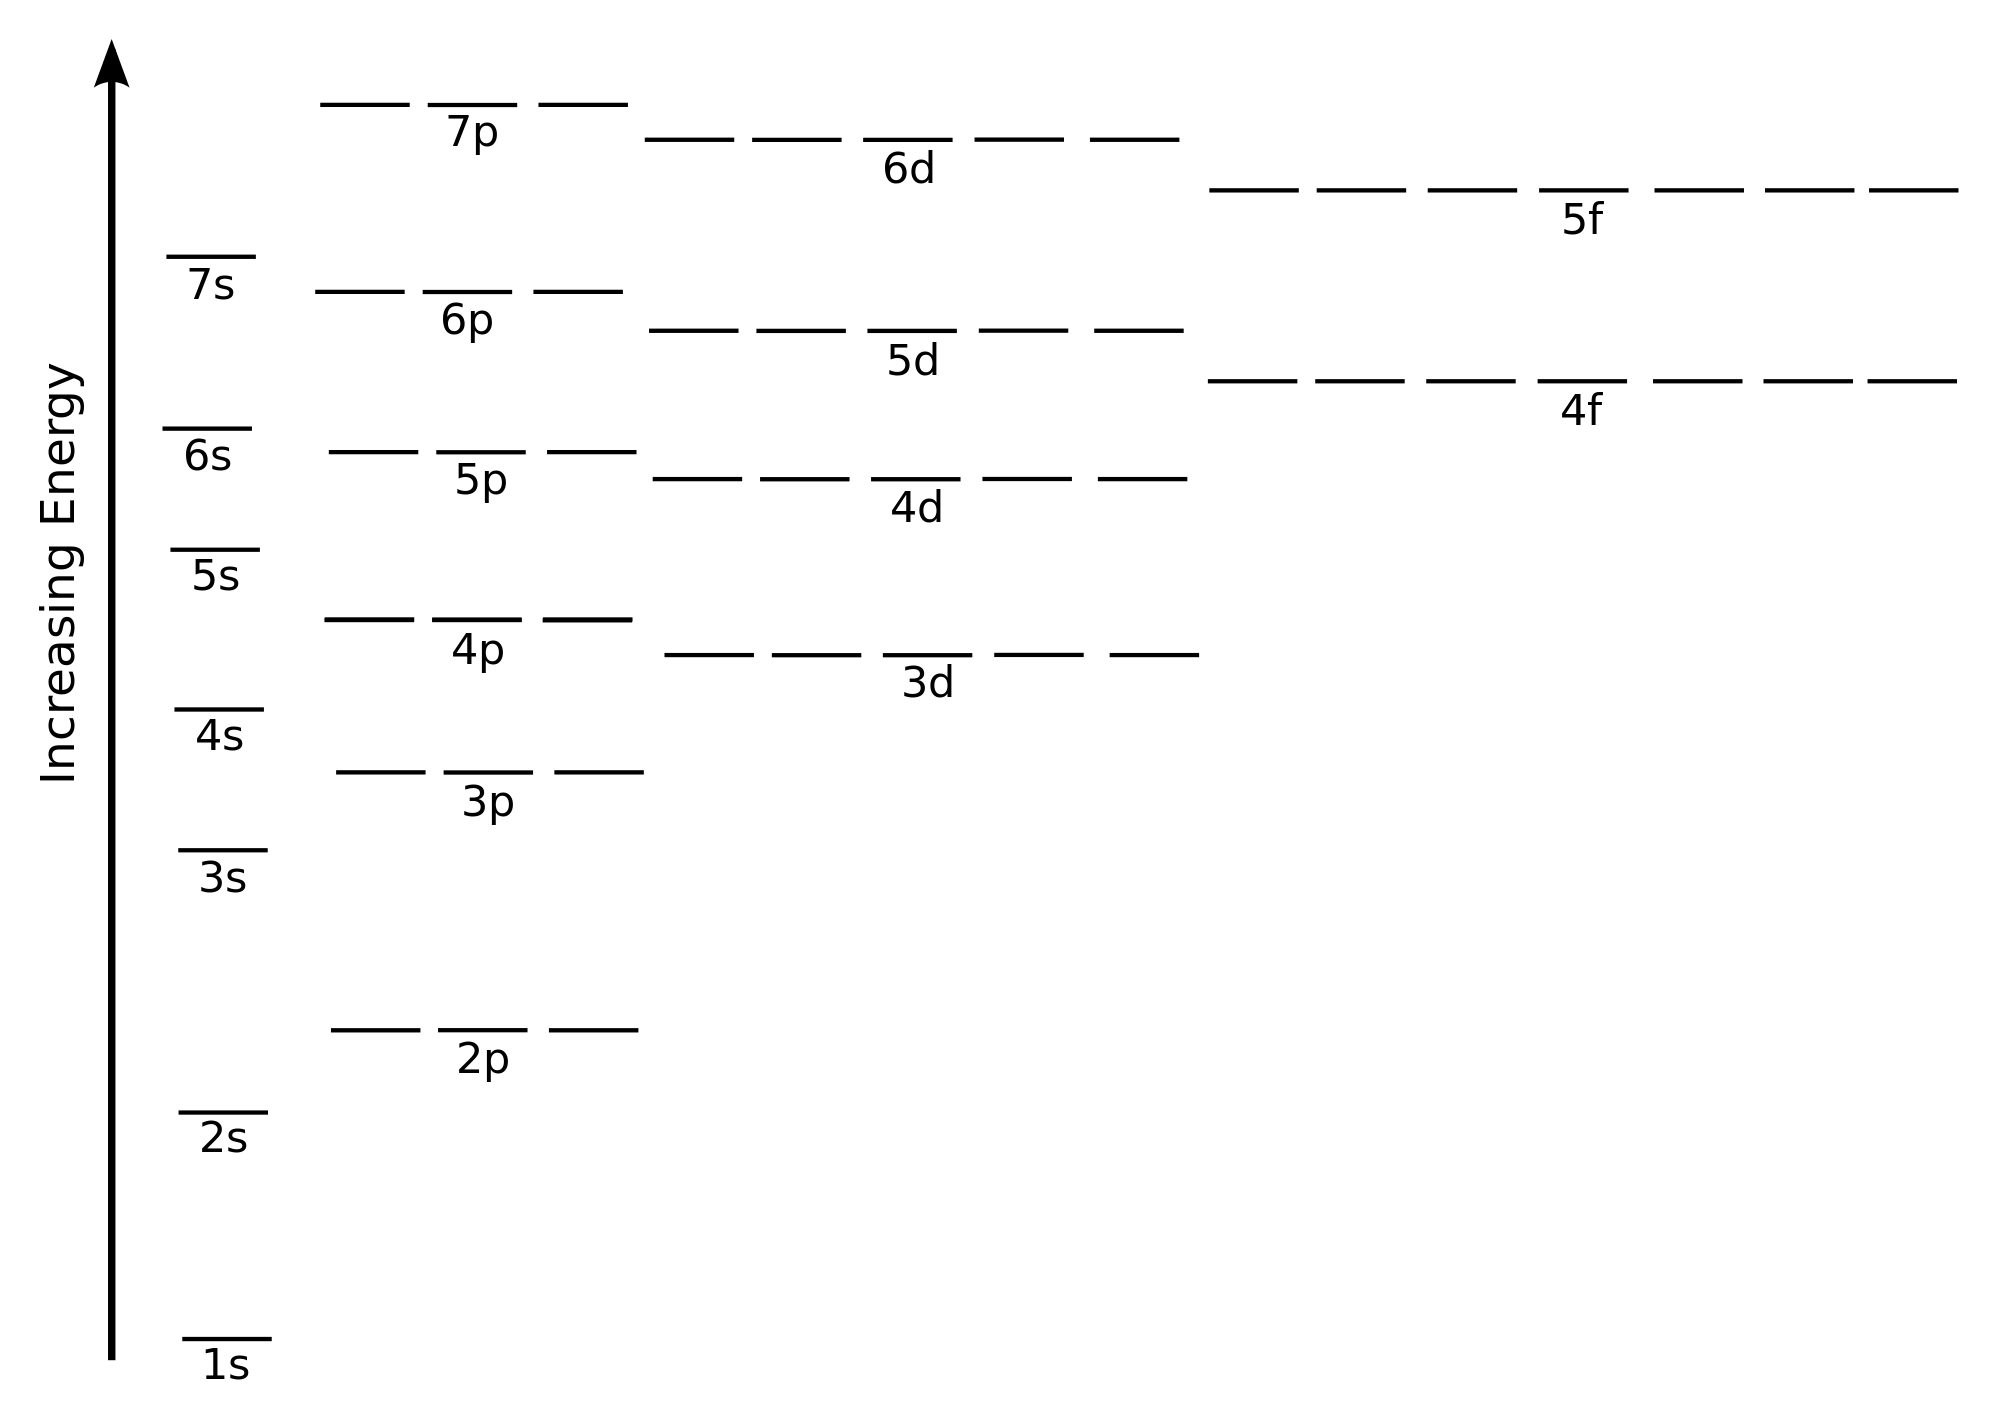 Electron Configuration Concert Worksheet